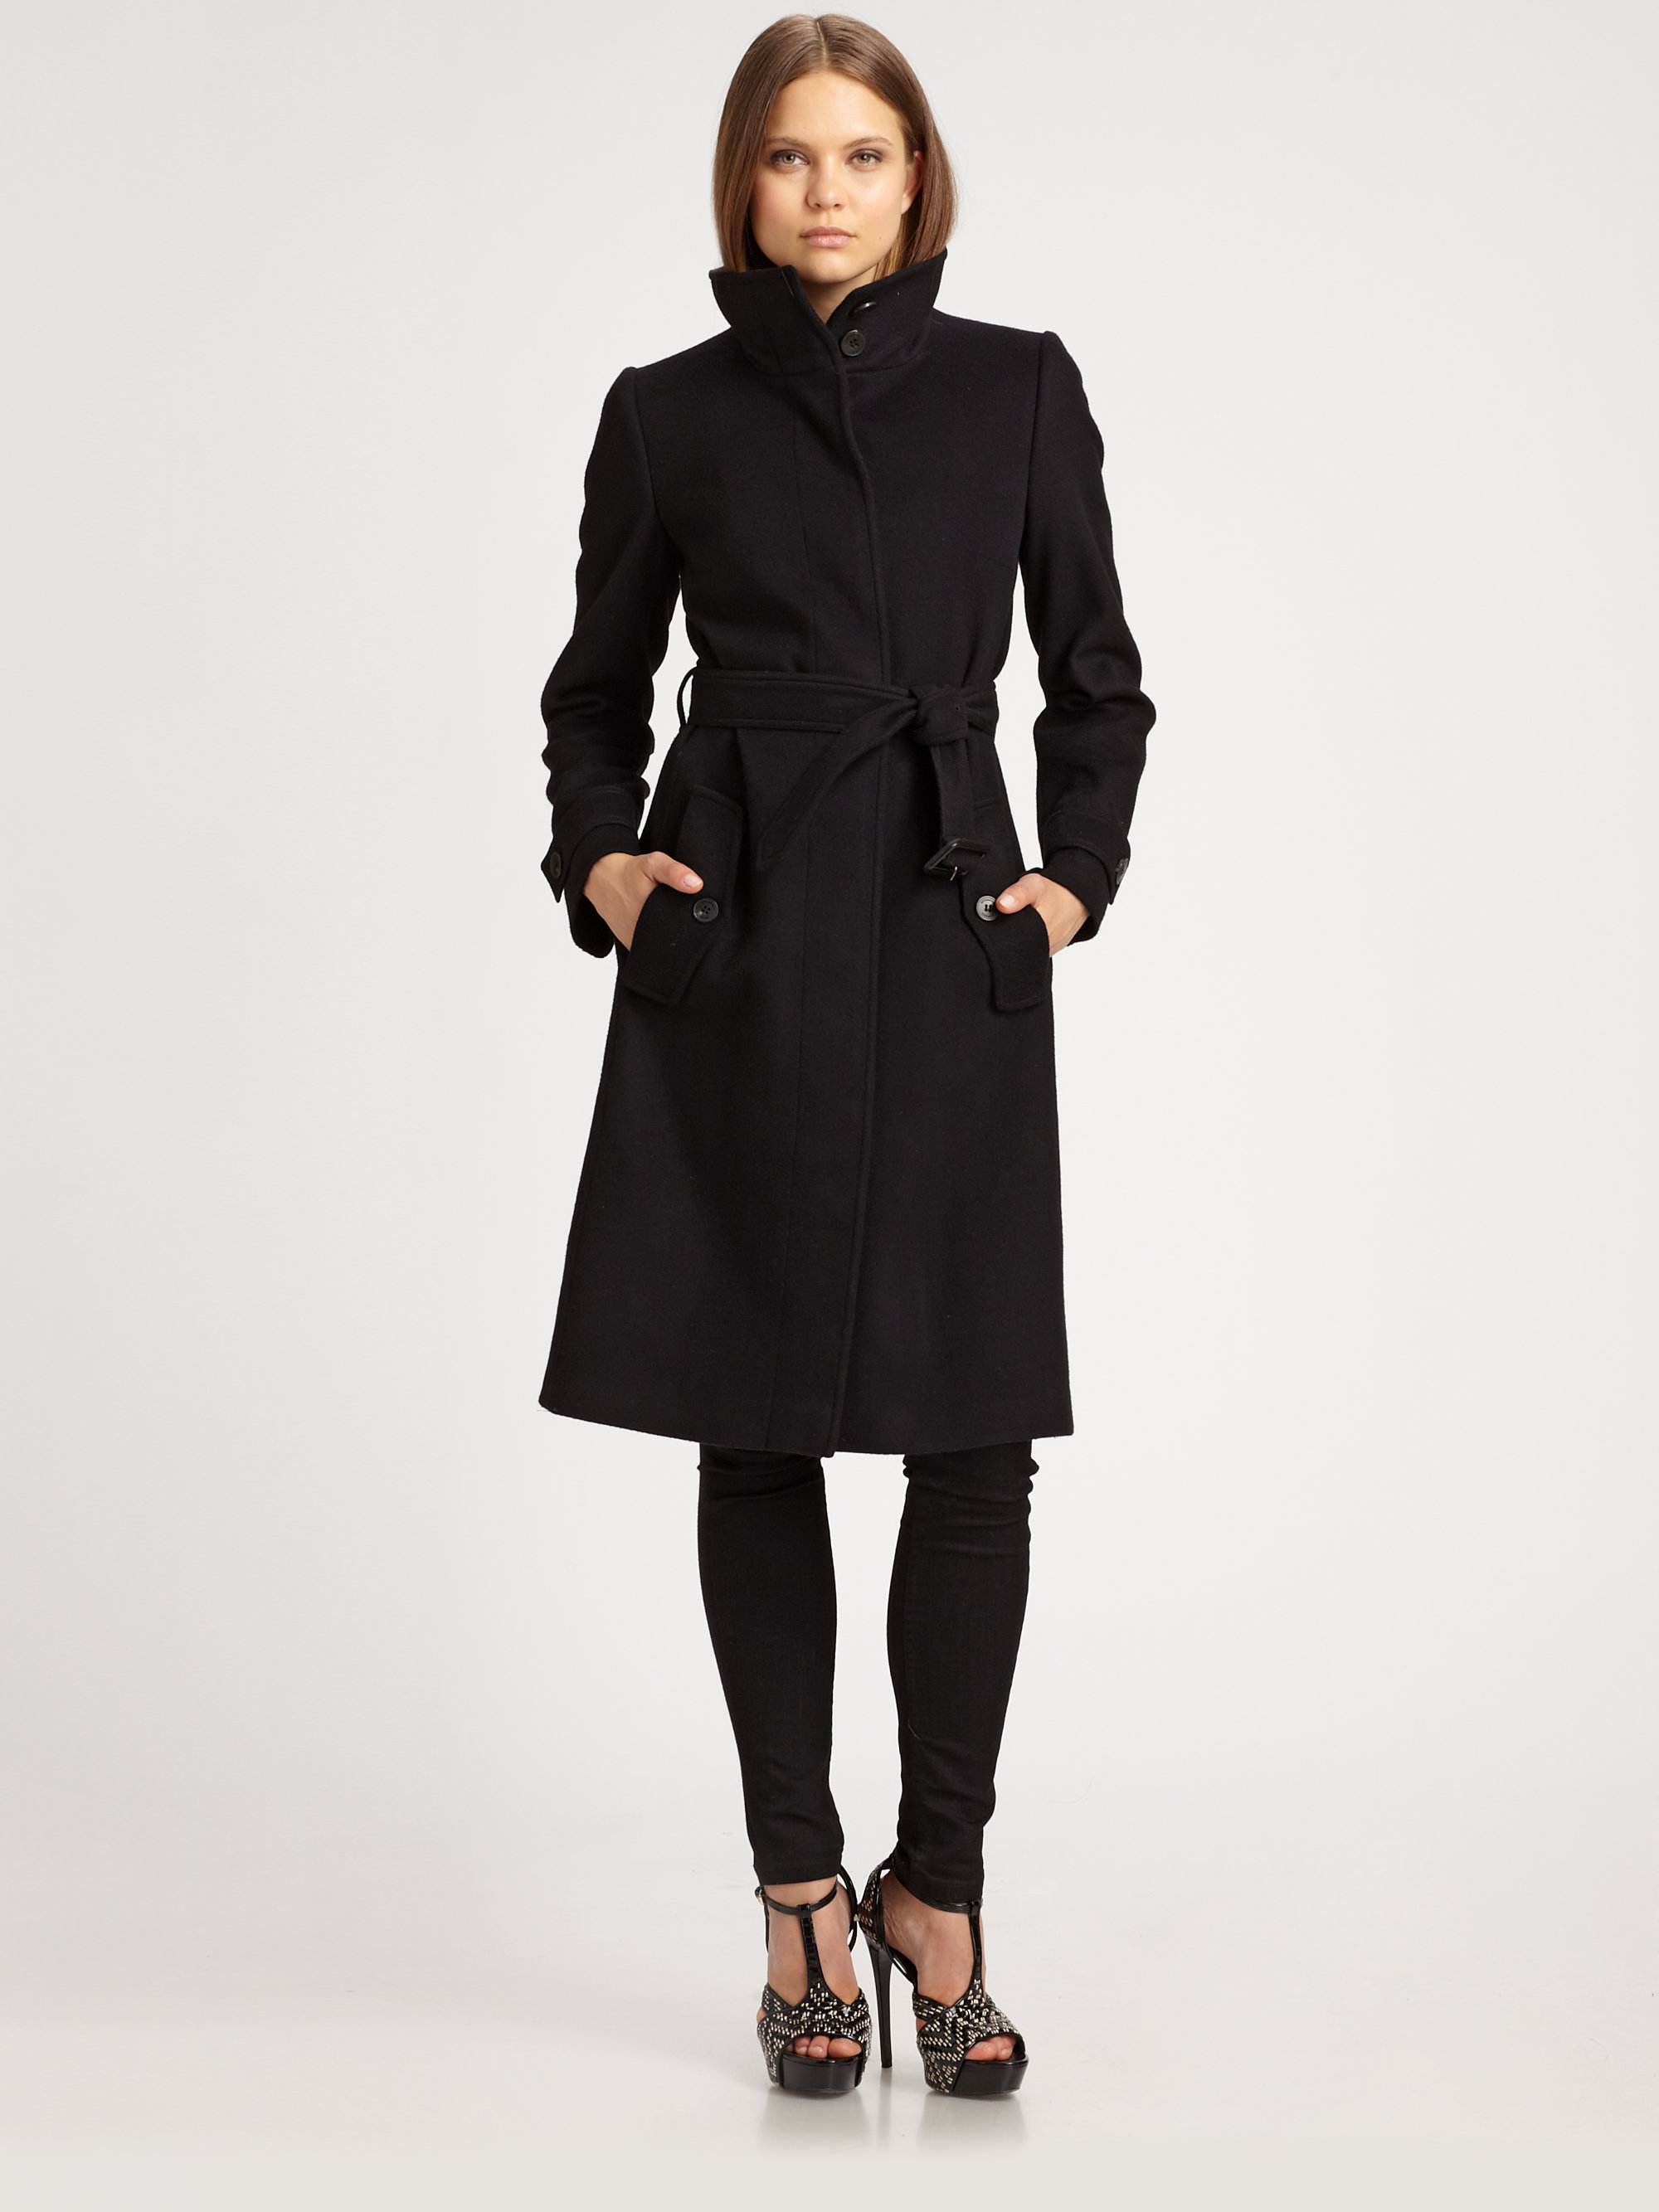 Burberry Wool/Cashmere Belted Coat in Black | Lyst